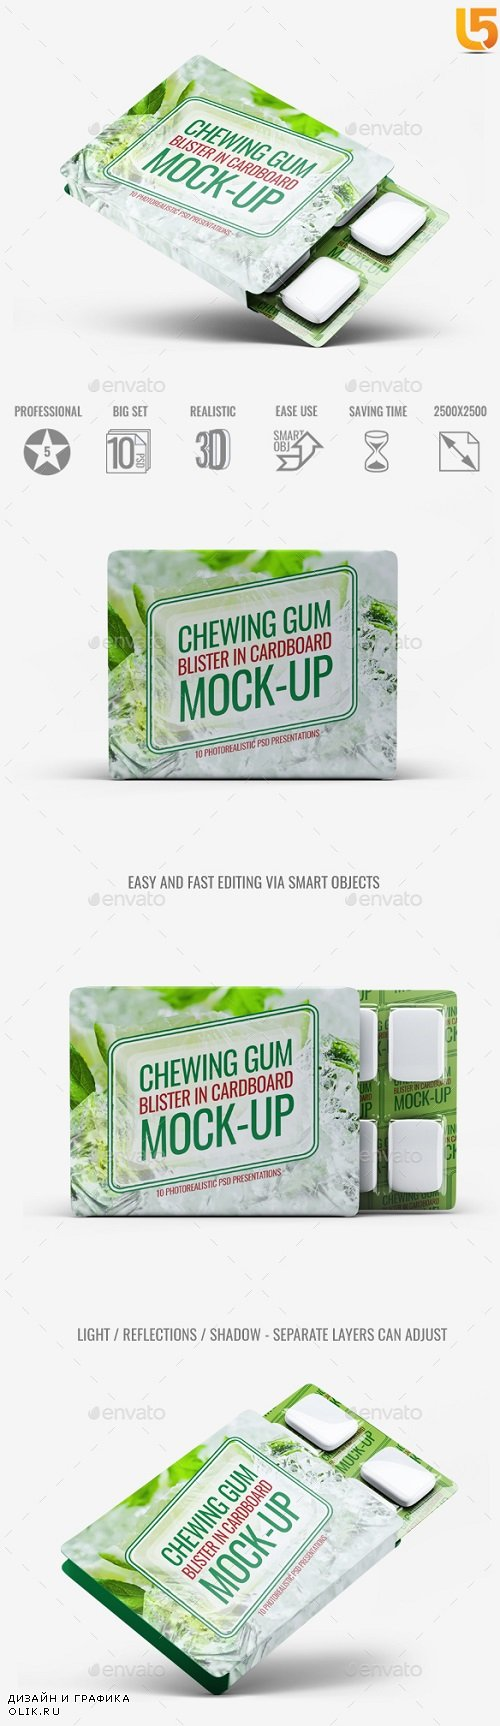 Chewing Gum Blister in Cardboard Mock-Up 20413007